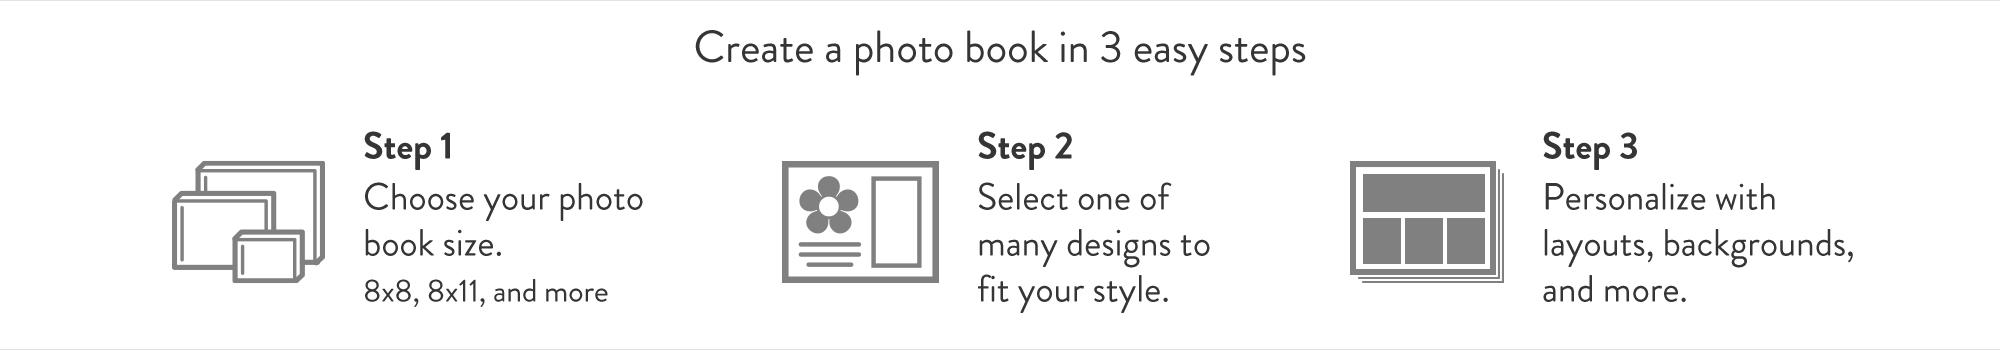 Get Started Choose Your Photo Book Size